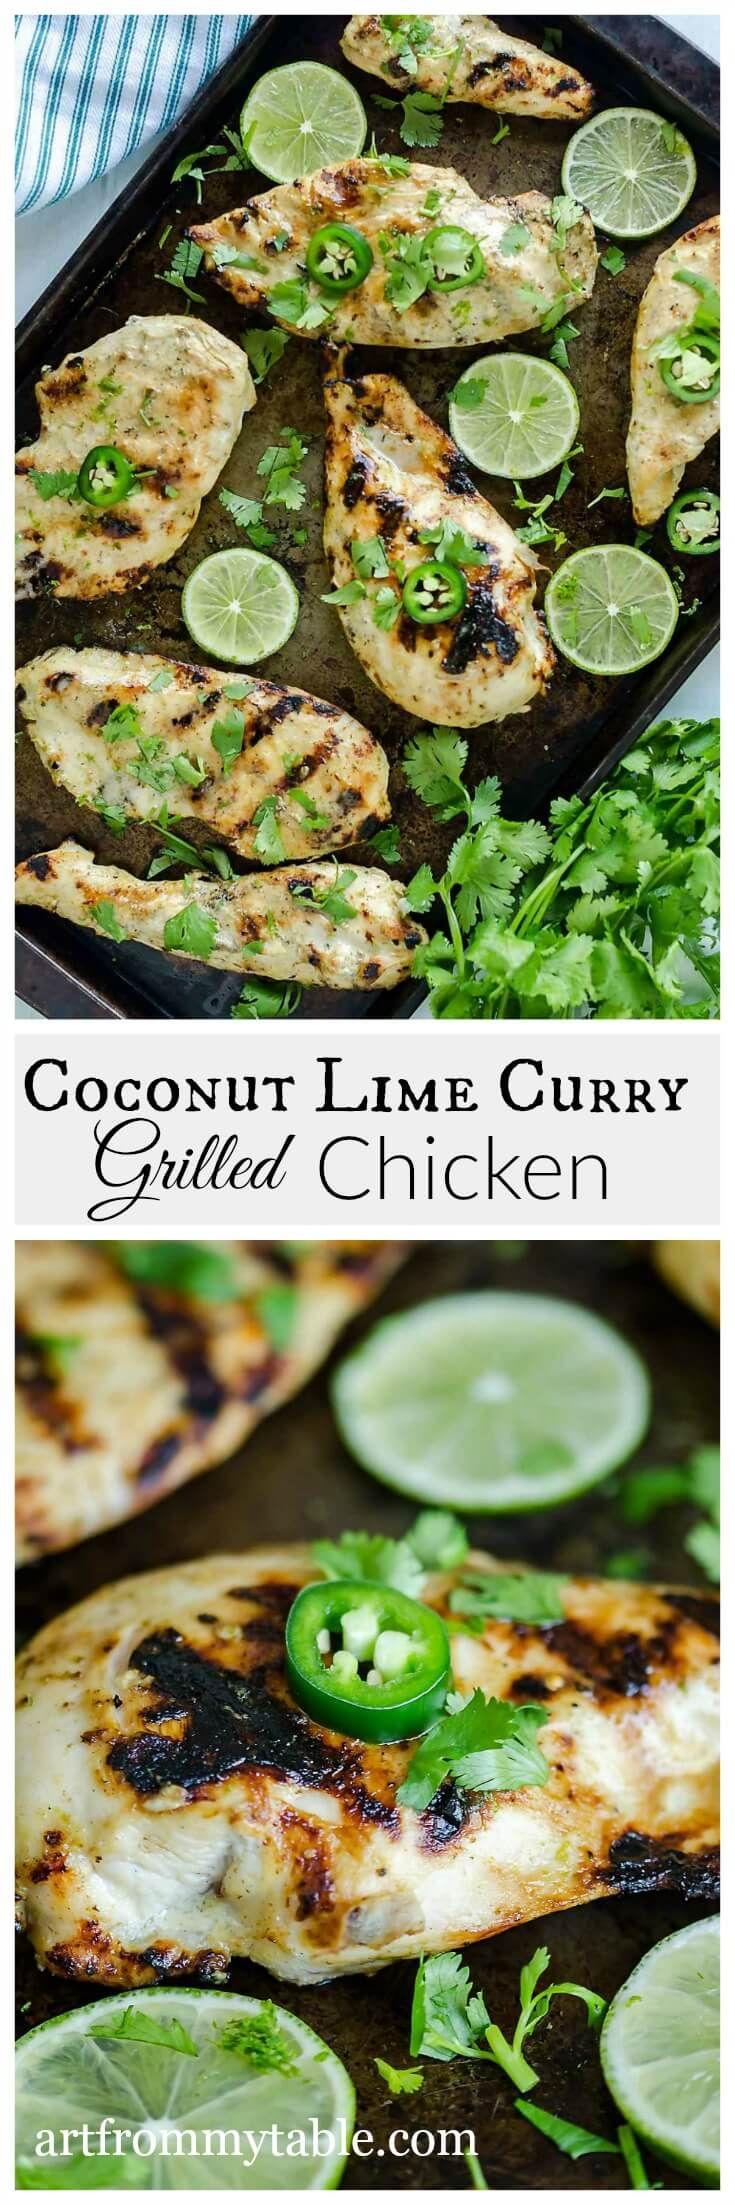 Looking for a healthy grilled chicken? This Coconut Lime Chicken Recipe is tender, juicy, and packed with flavors of coconut, lime and a hint of curry.